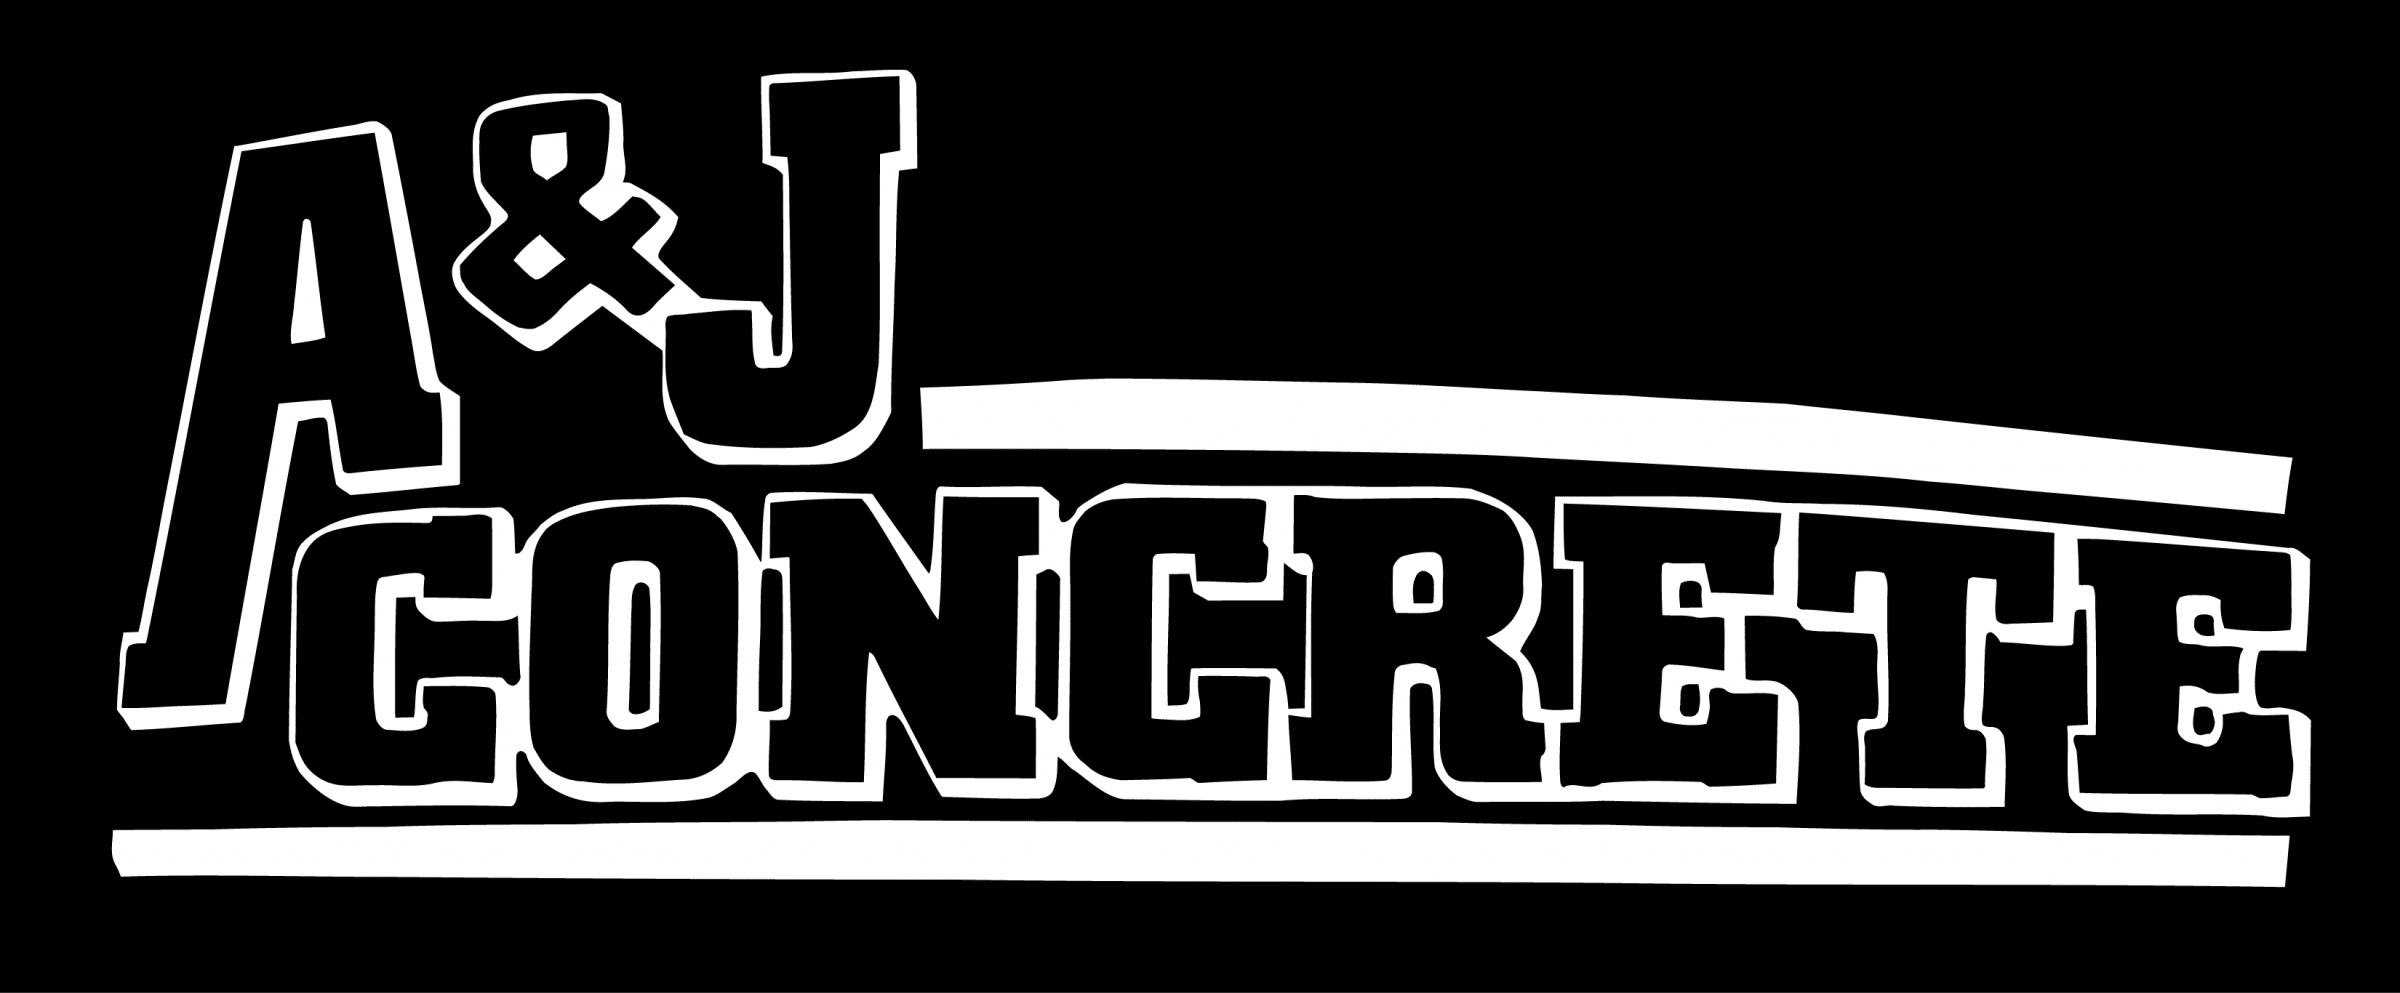 A and J Concrete Construction